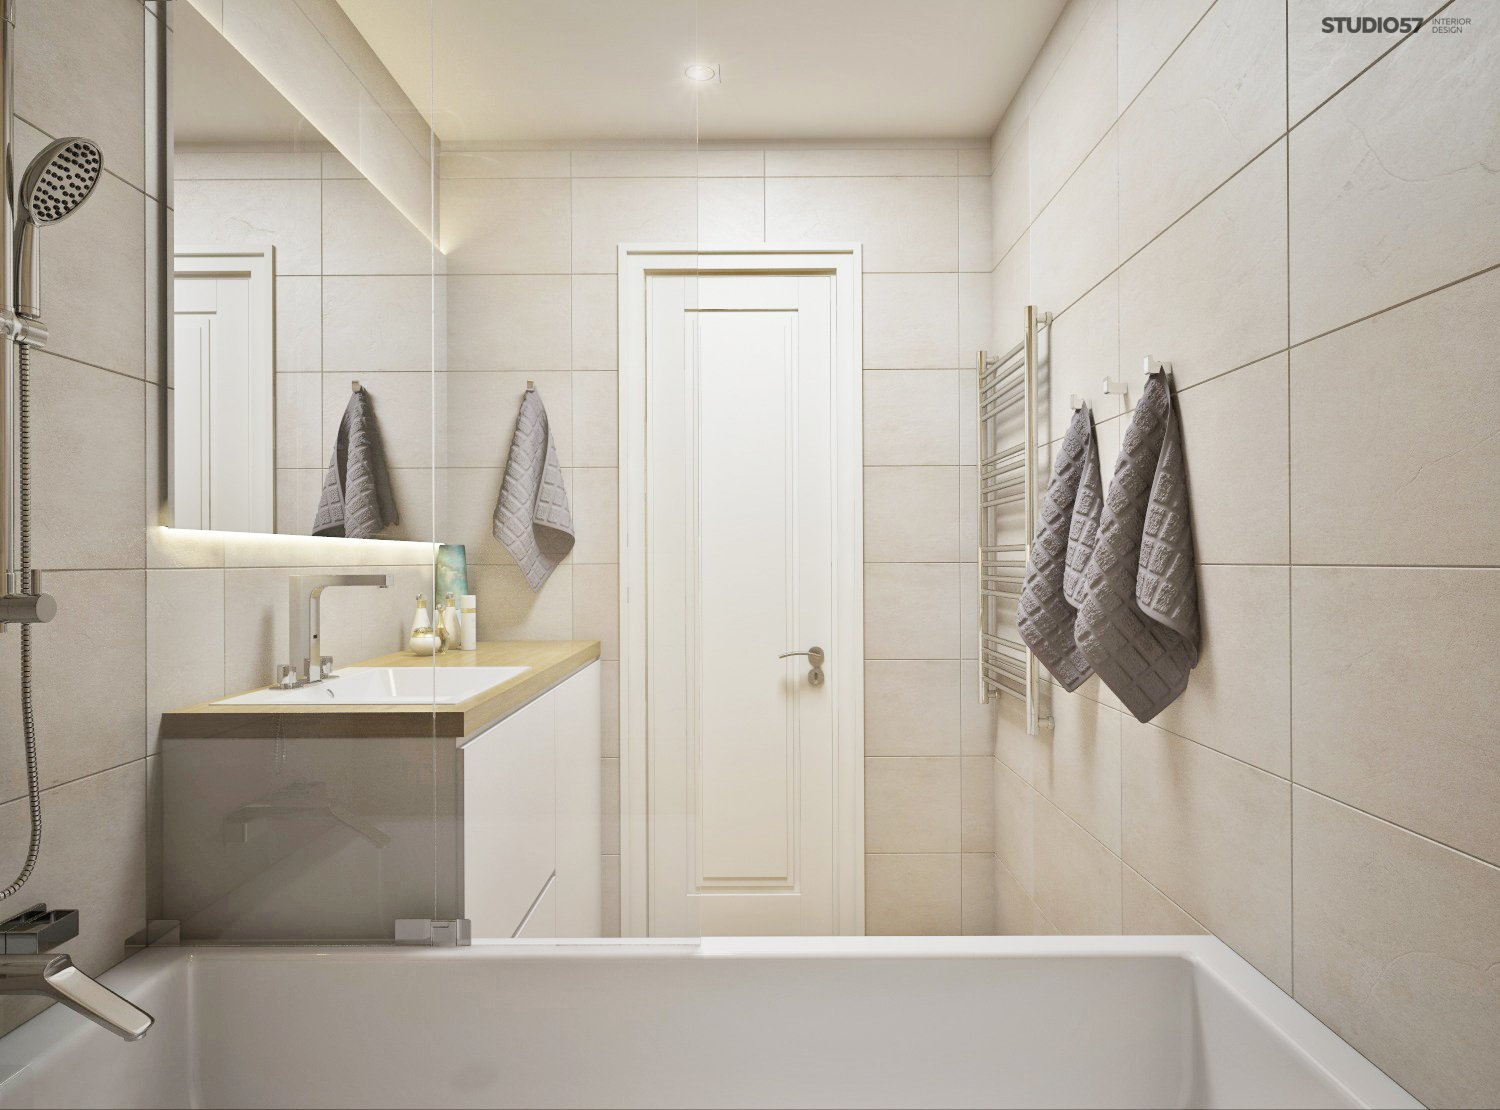 Bathroom in a modern style image